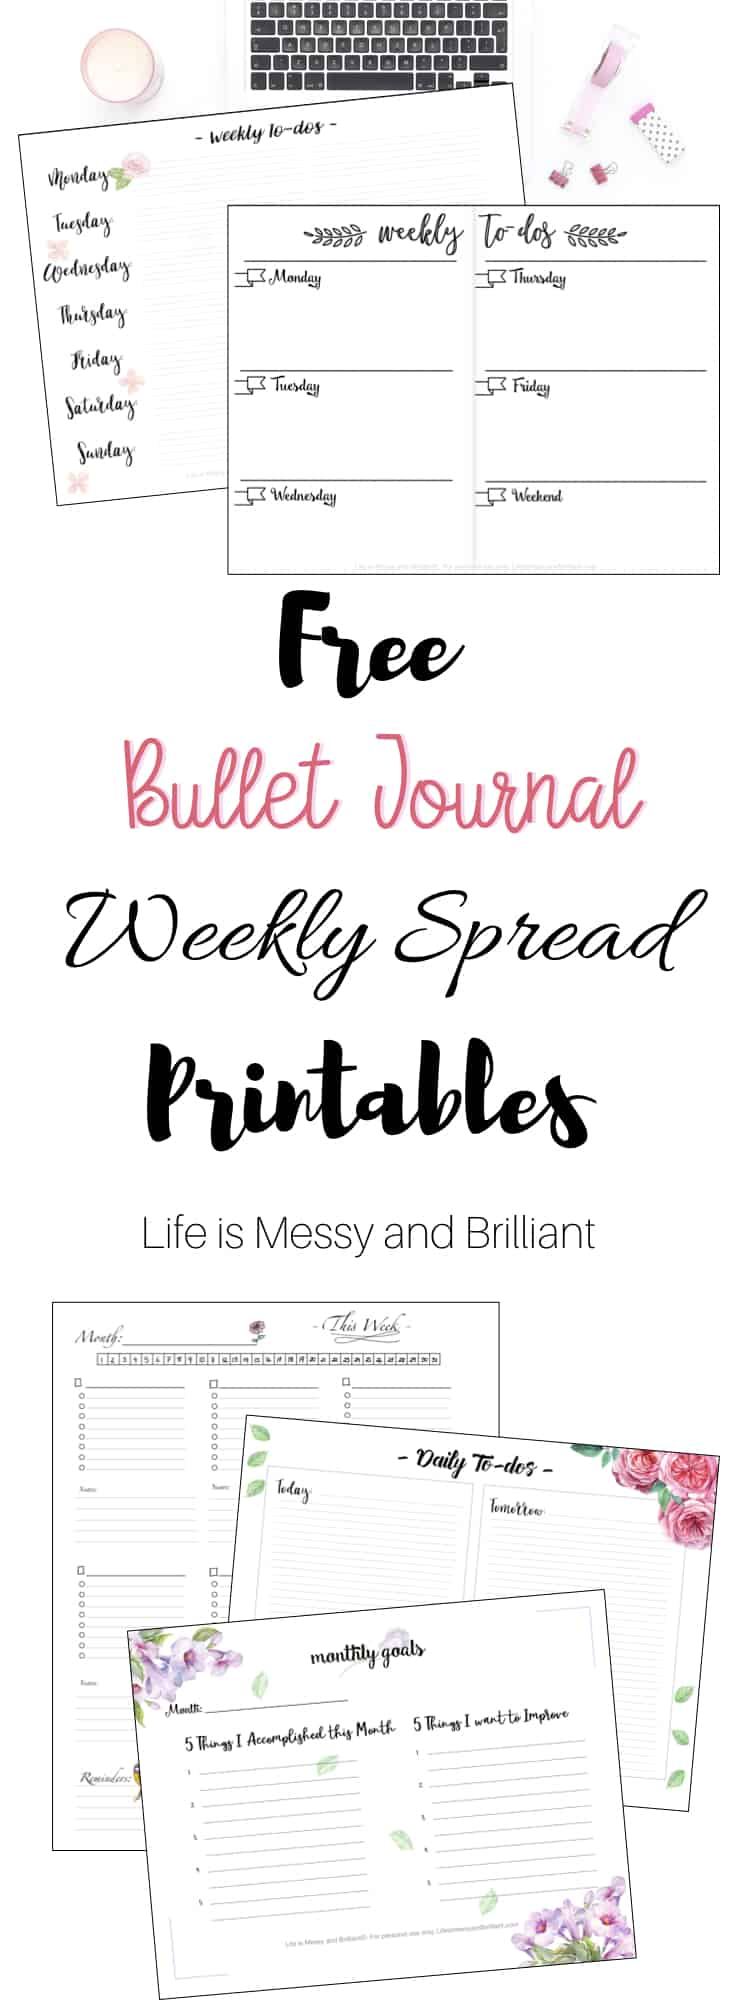 This is an image of Monster Bullet Journal Weekly Spread Printable